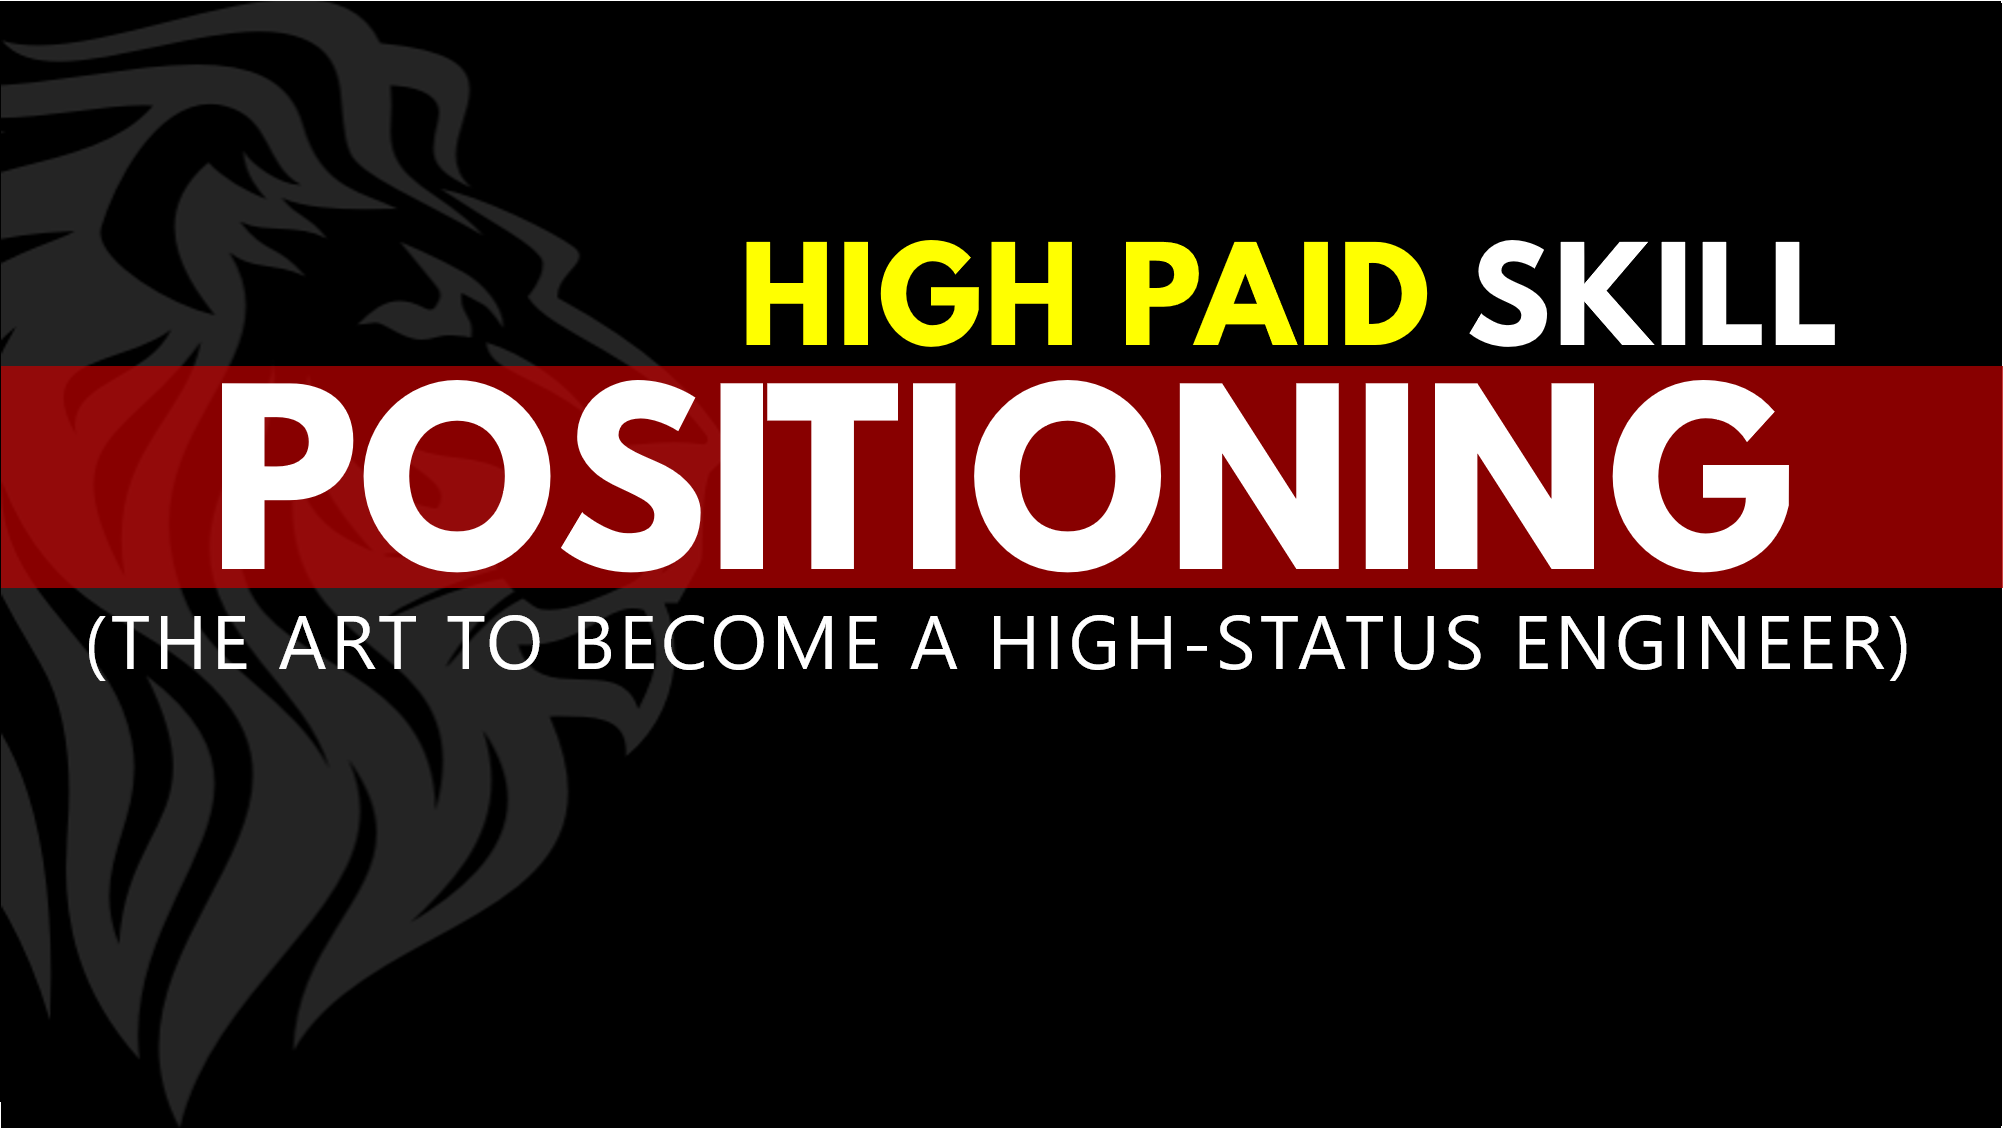 high paid skill positioning